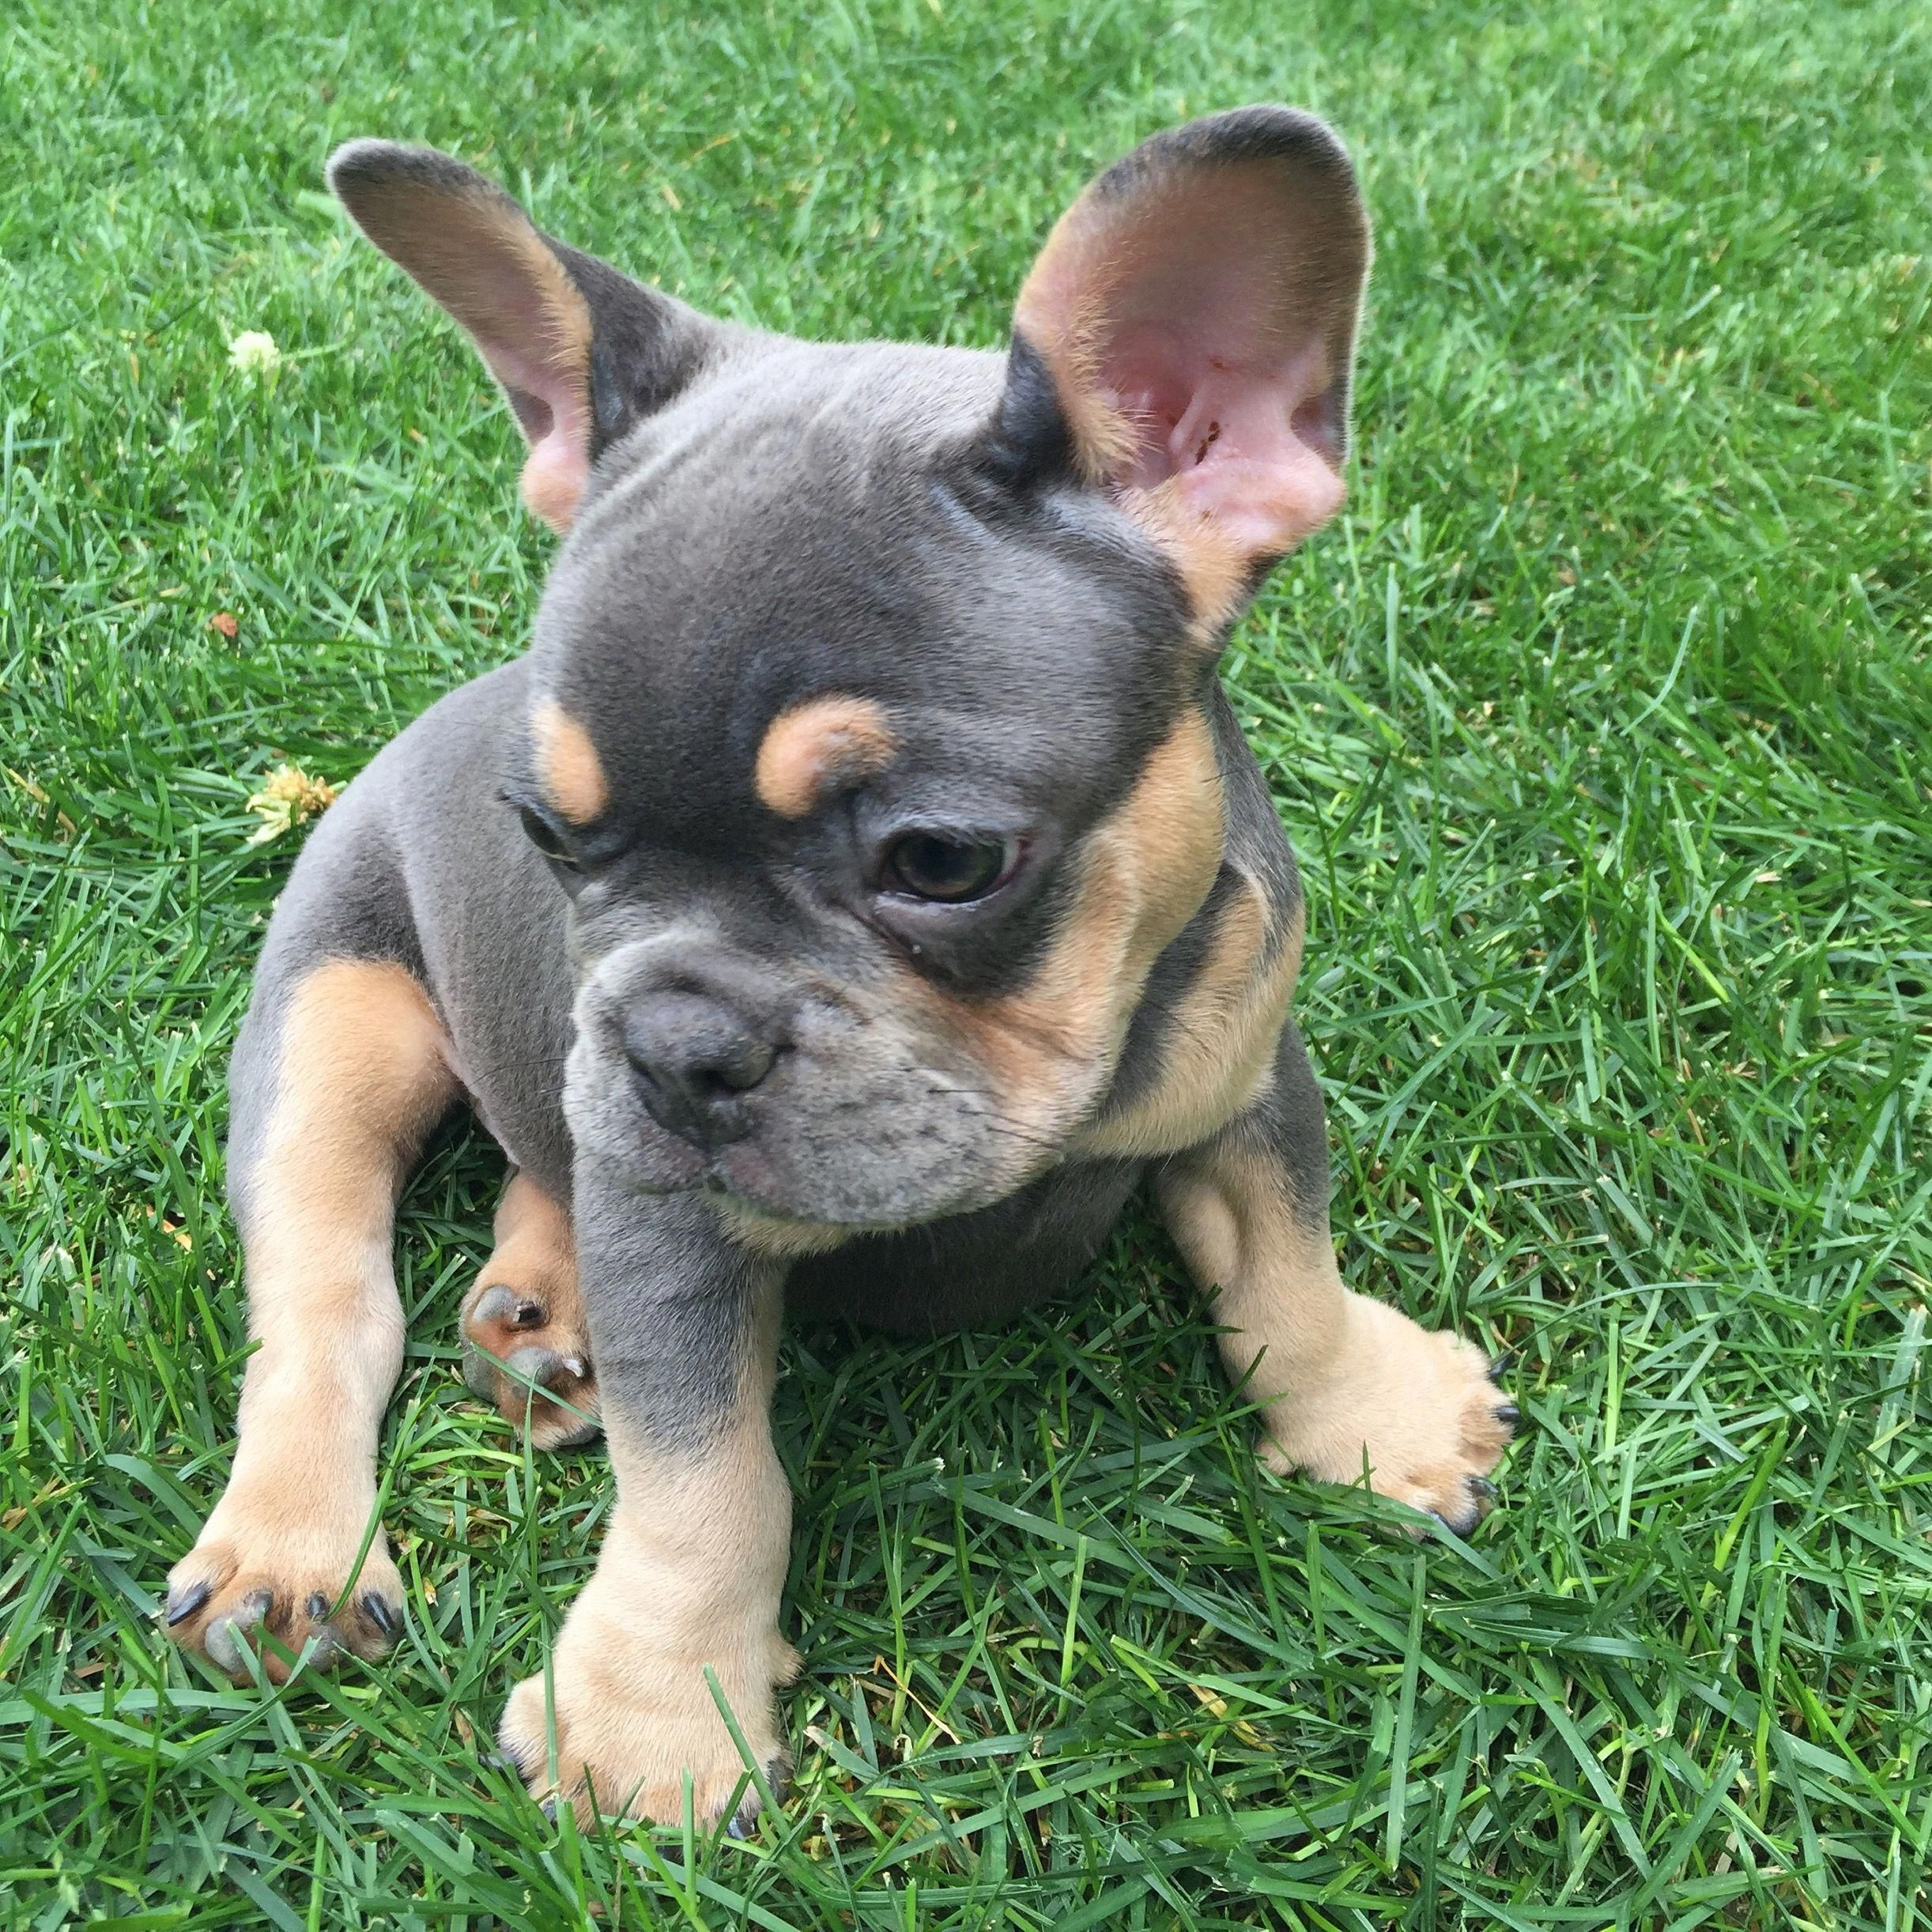 Our New Blue And Tan French Bulldog Puppy Martini She S So Cute And Sweet Bulldogpuppies Bulldog Puppies French Bulldog Puppies French Bulldog Full Grown